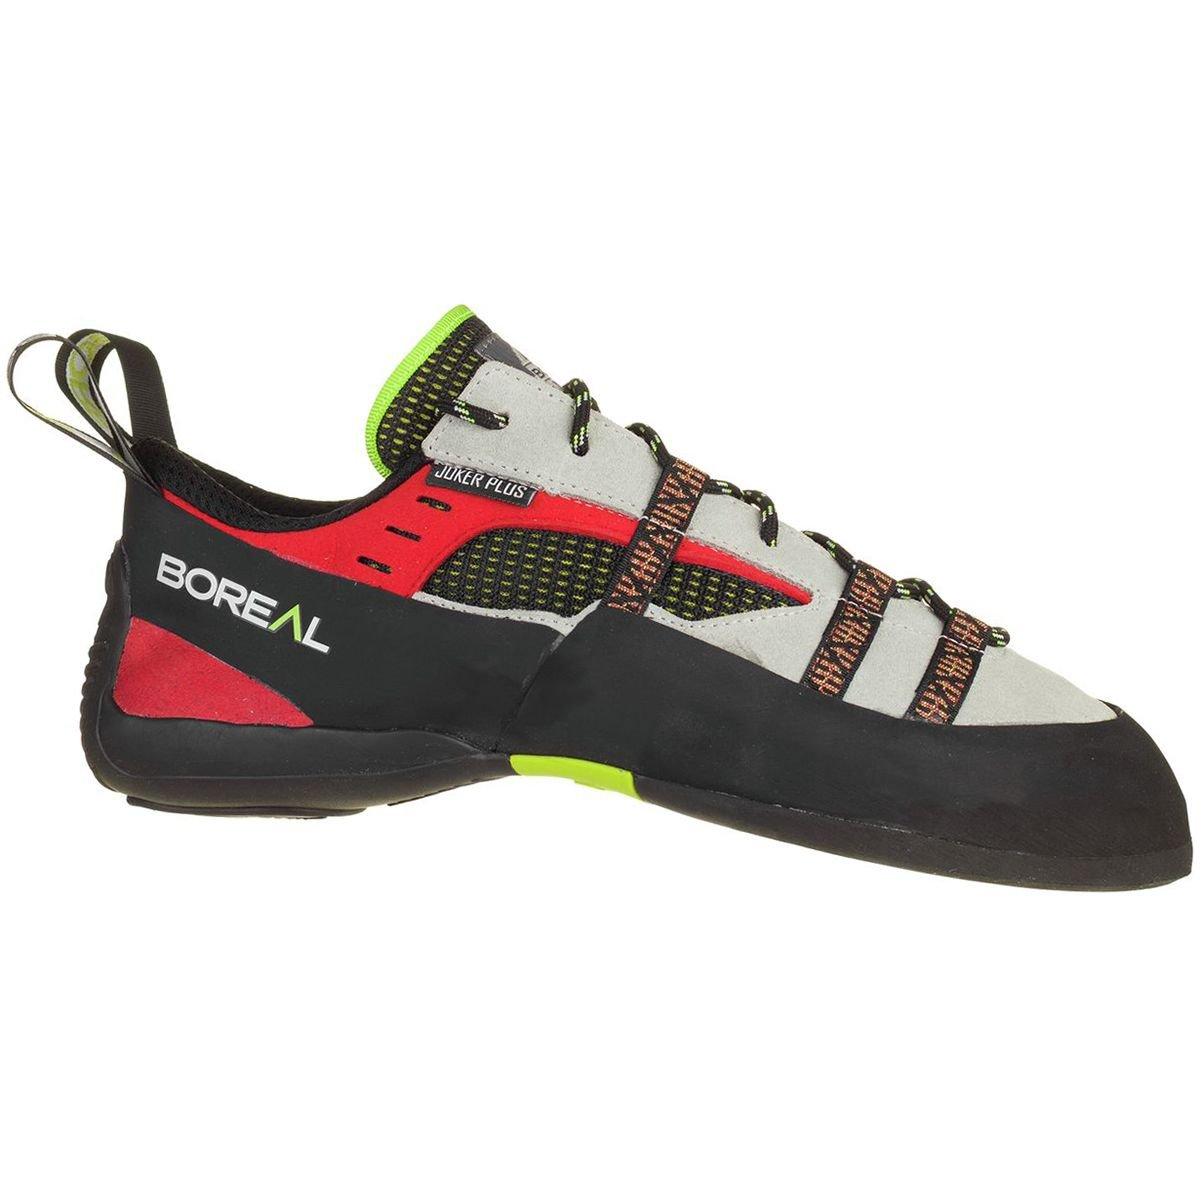 Boreal Joker Plus Lace-Up Climbing Shoe 11375-11/10